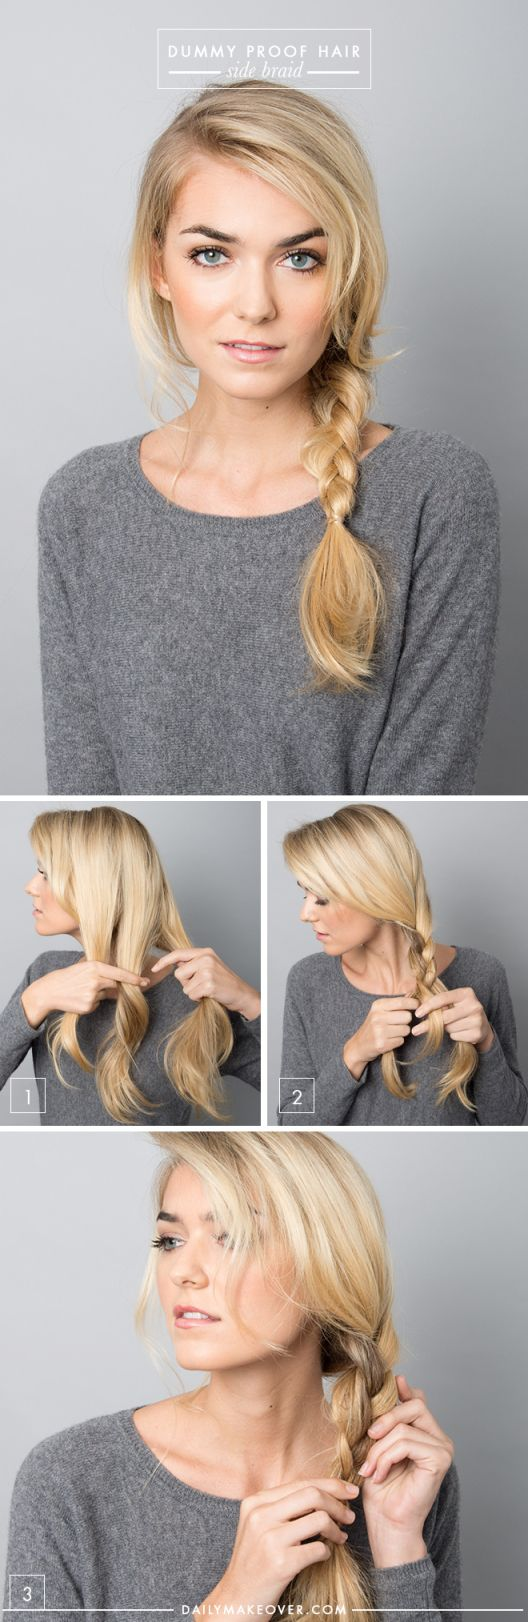 5 Dummy Proof Hairstyles That Everyone Can Master     StyleCaster